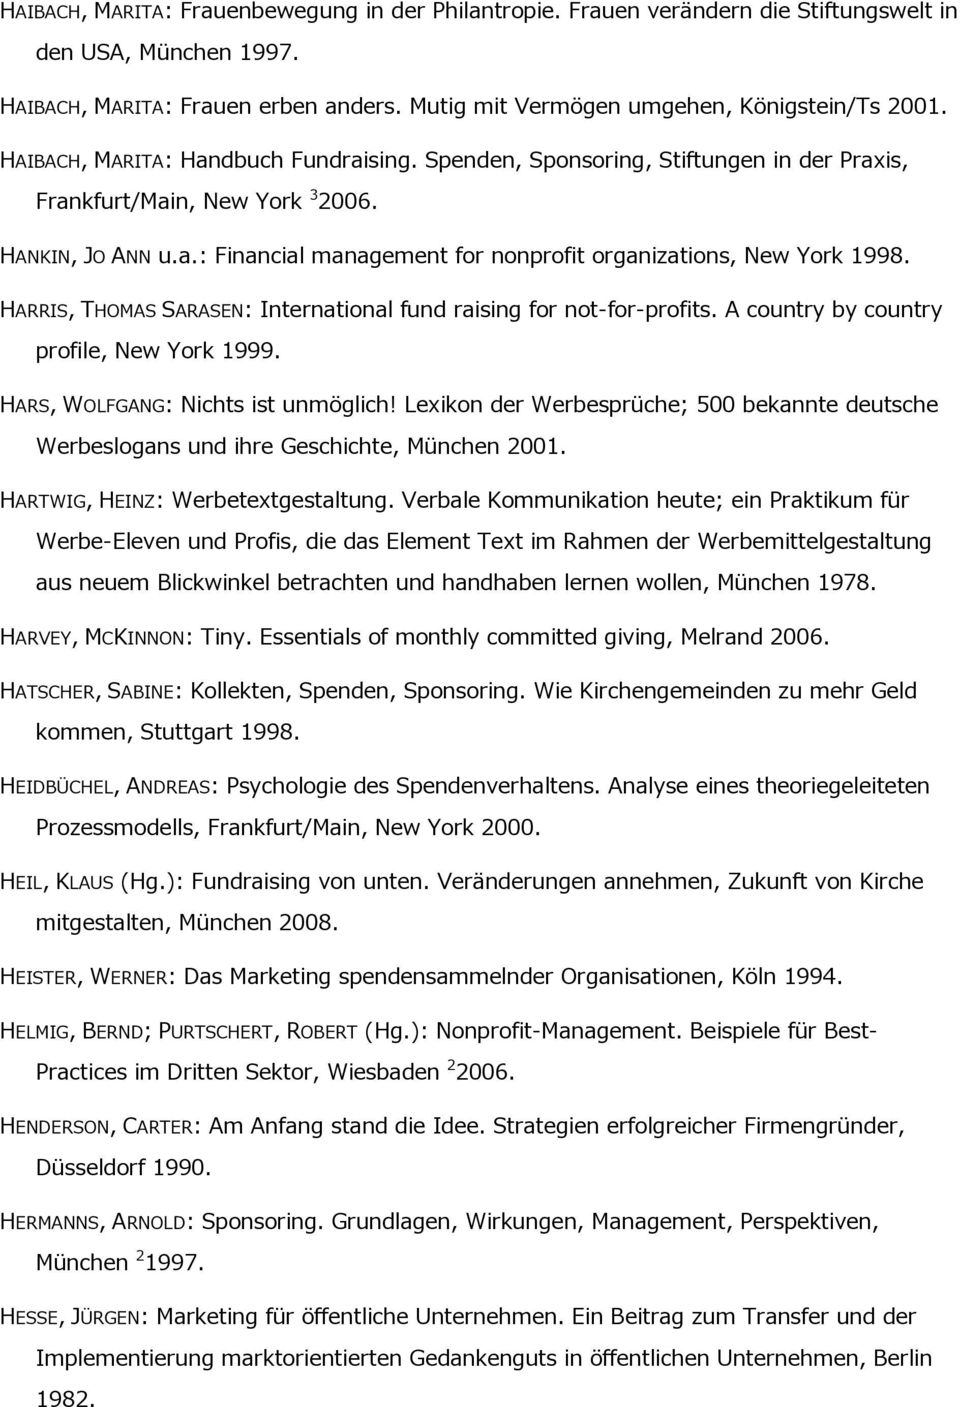 HARRIS, THOMAS SARASEN: International fund raising for not-for-profits. A country by country profile, New York 1999. HARS, WOLFGANG: Nichts ist unmöglich!